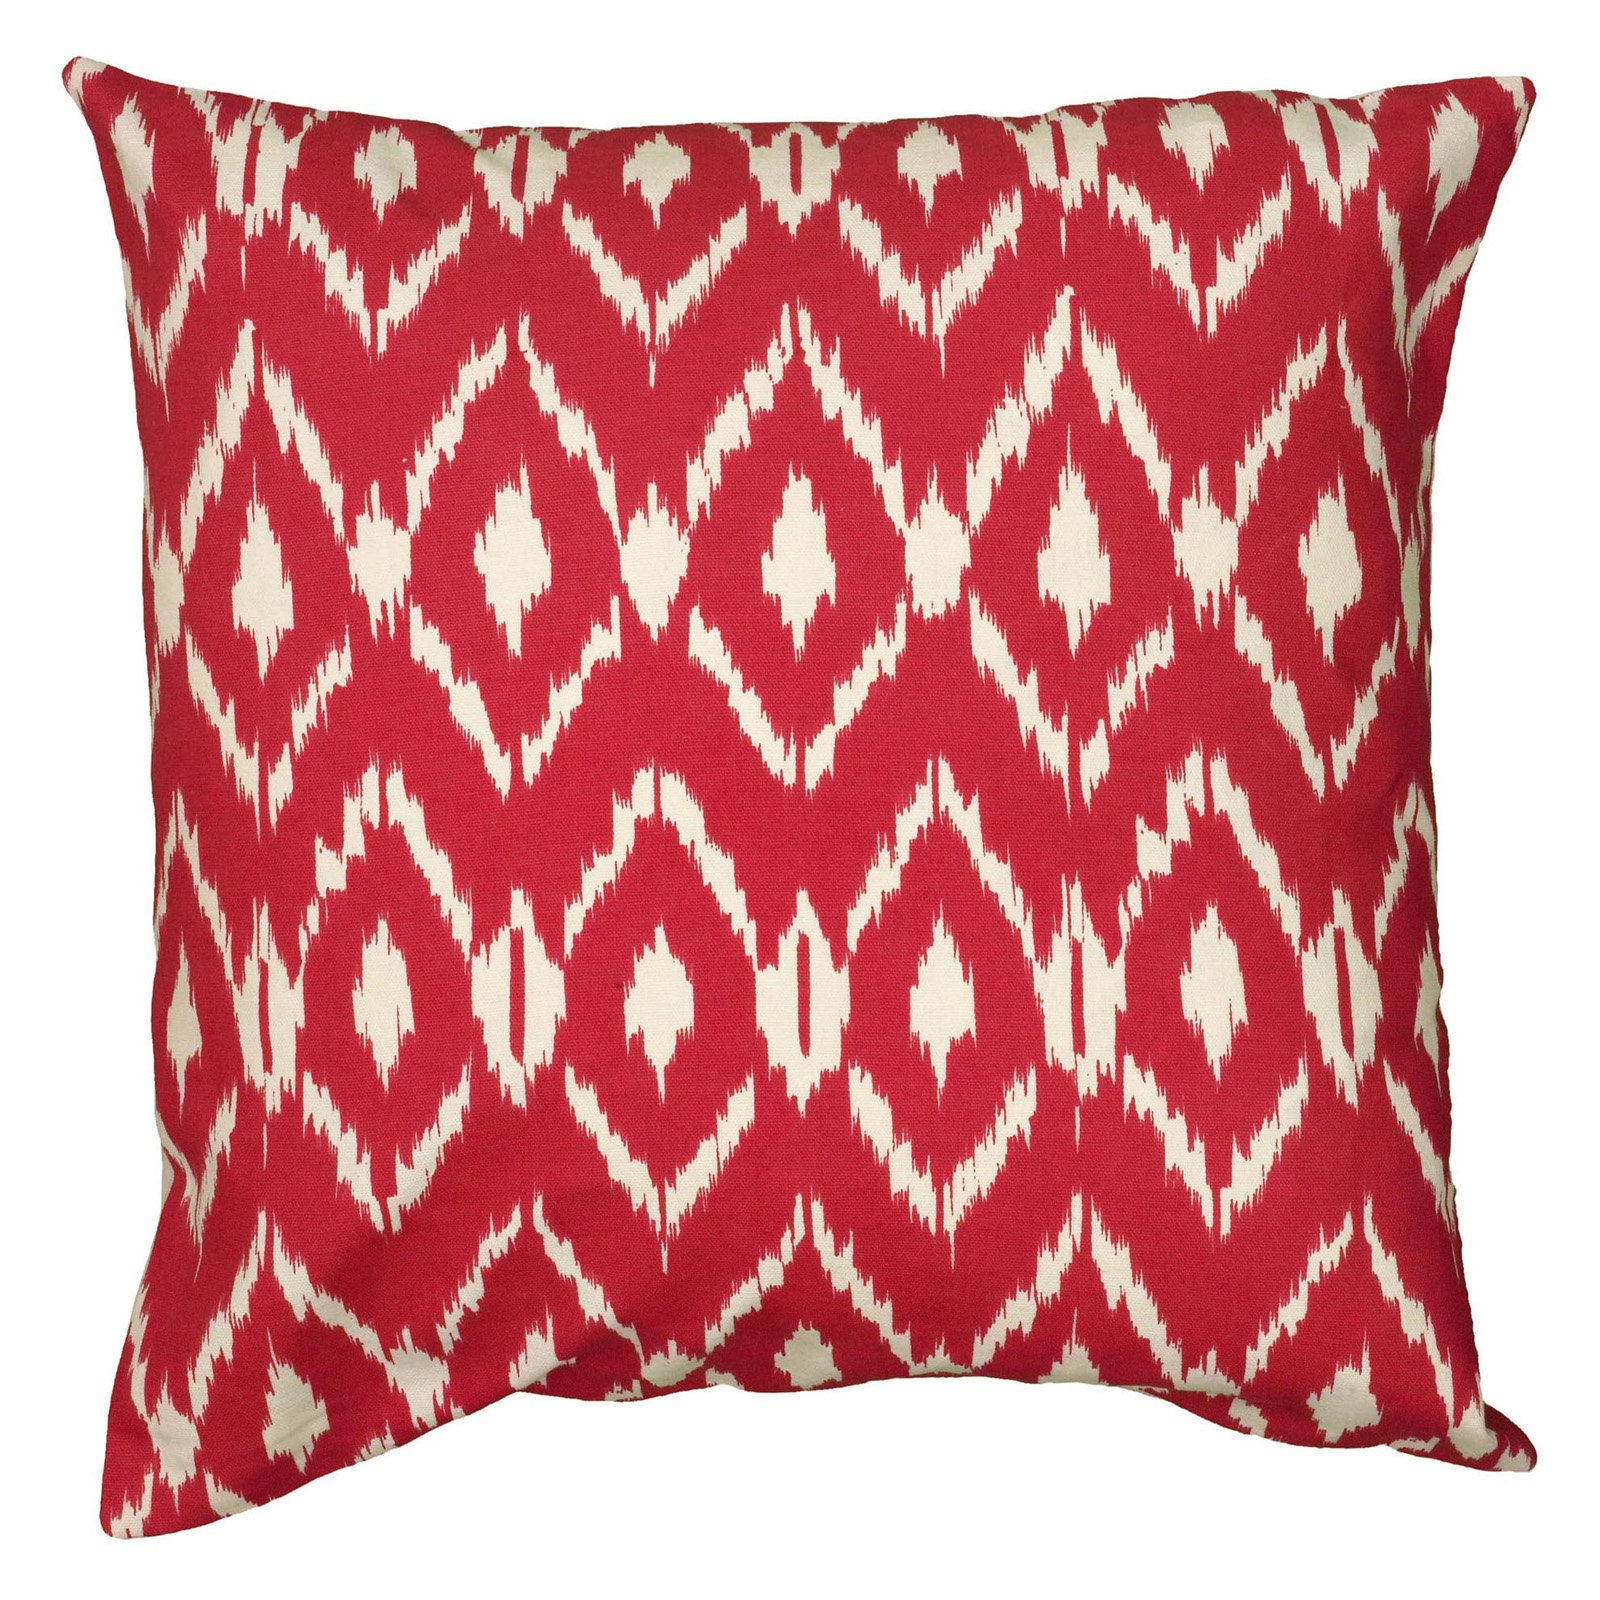 "Rizzy Home Fractured Ikat Cotton Decorative Throw Pillow, 18"" x 18"", Navy Blue"